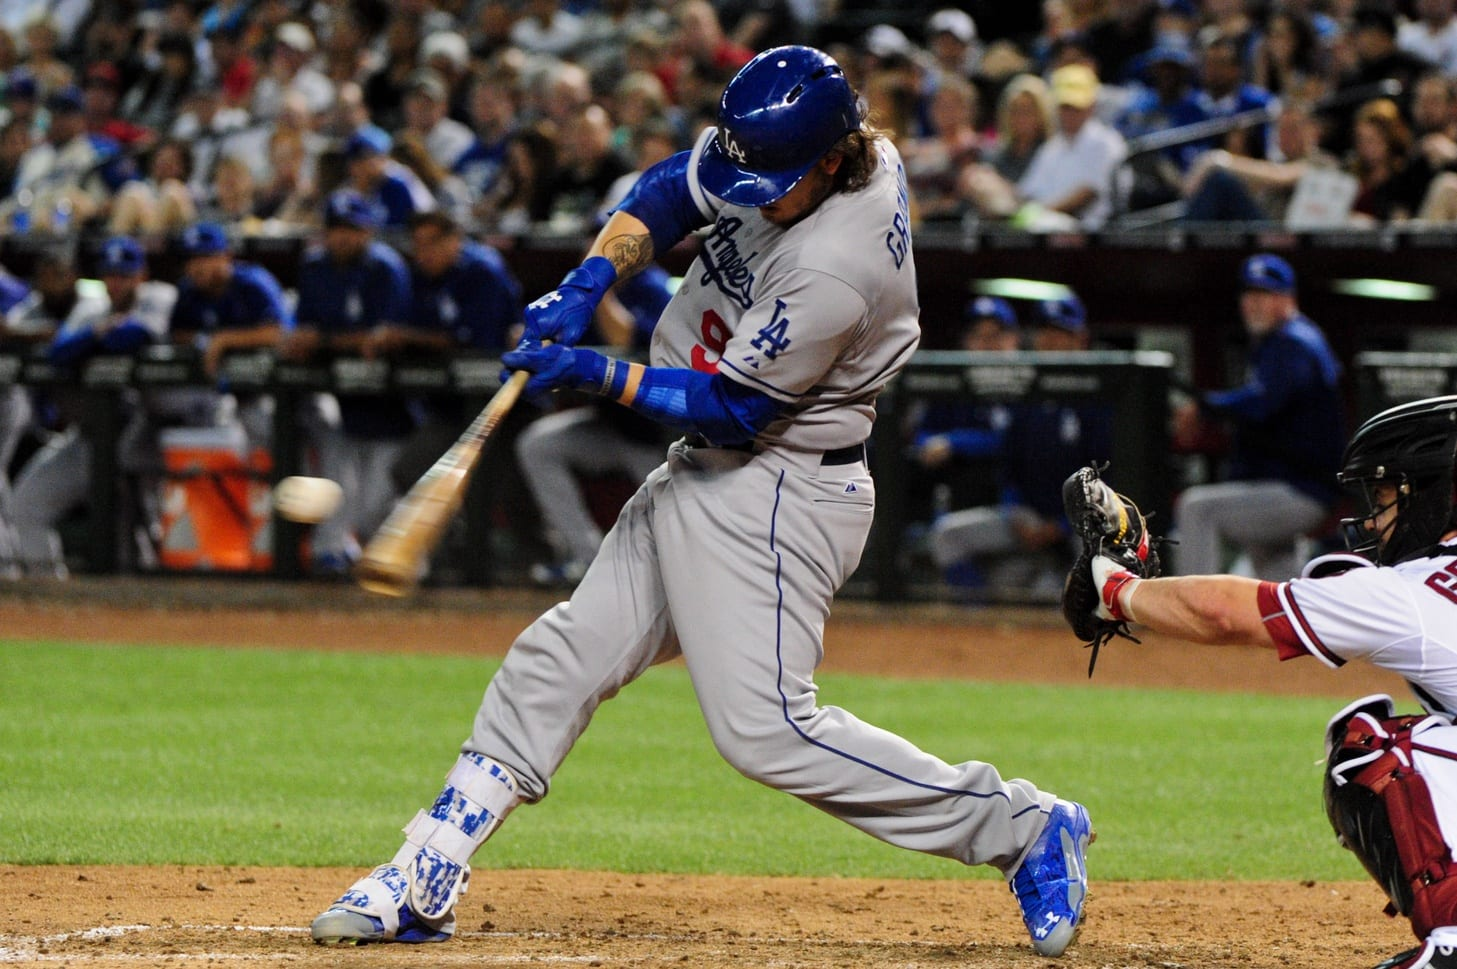 Yasmani Grandal Hits First Home Run With Dodgers (video)